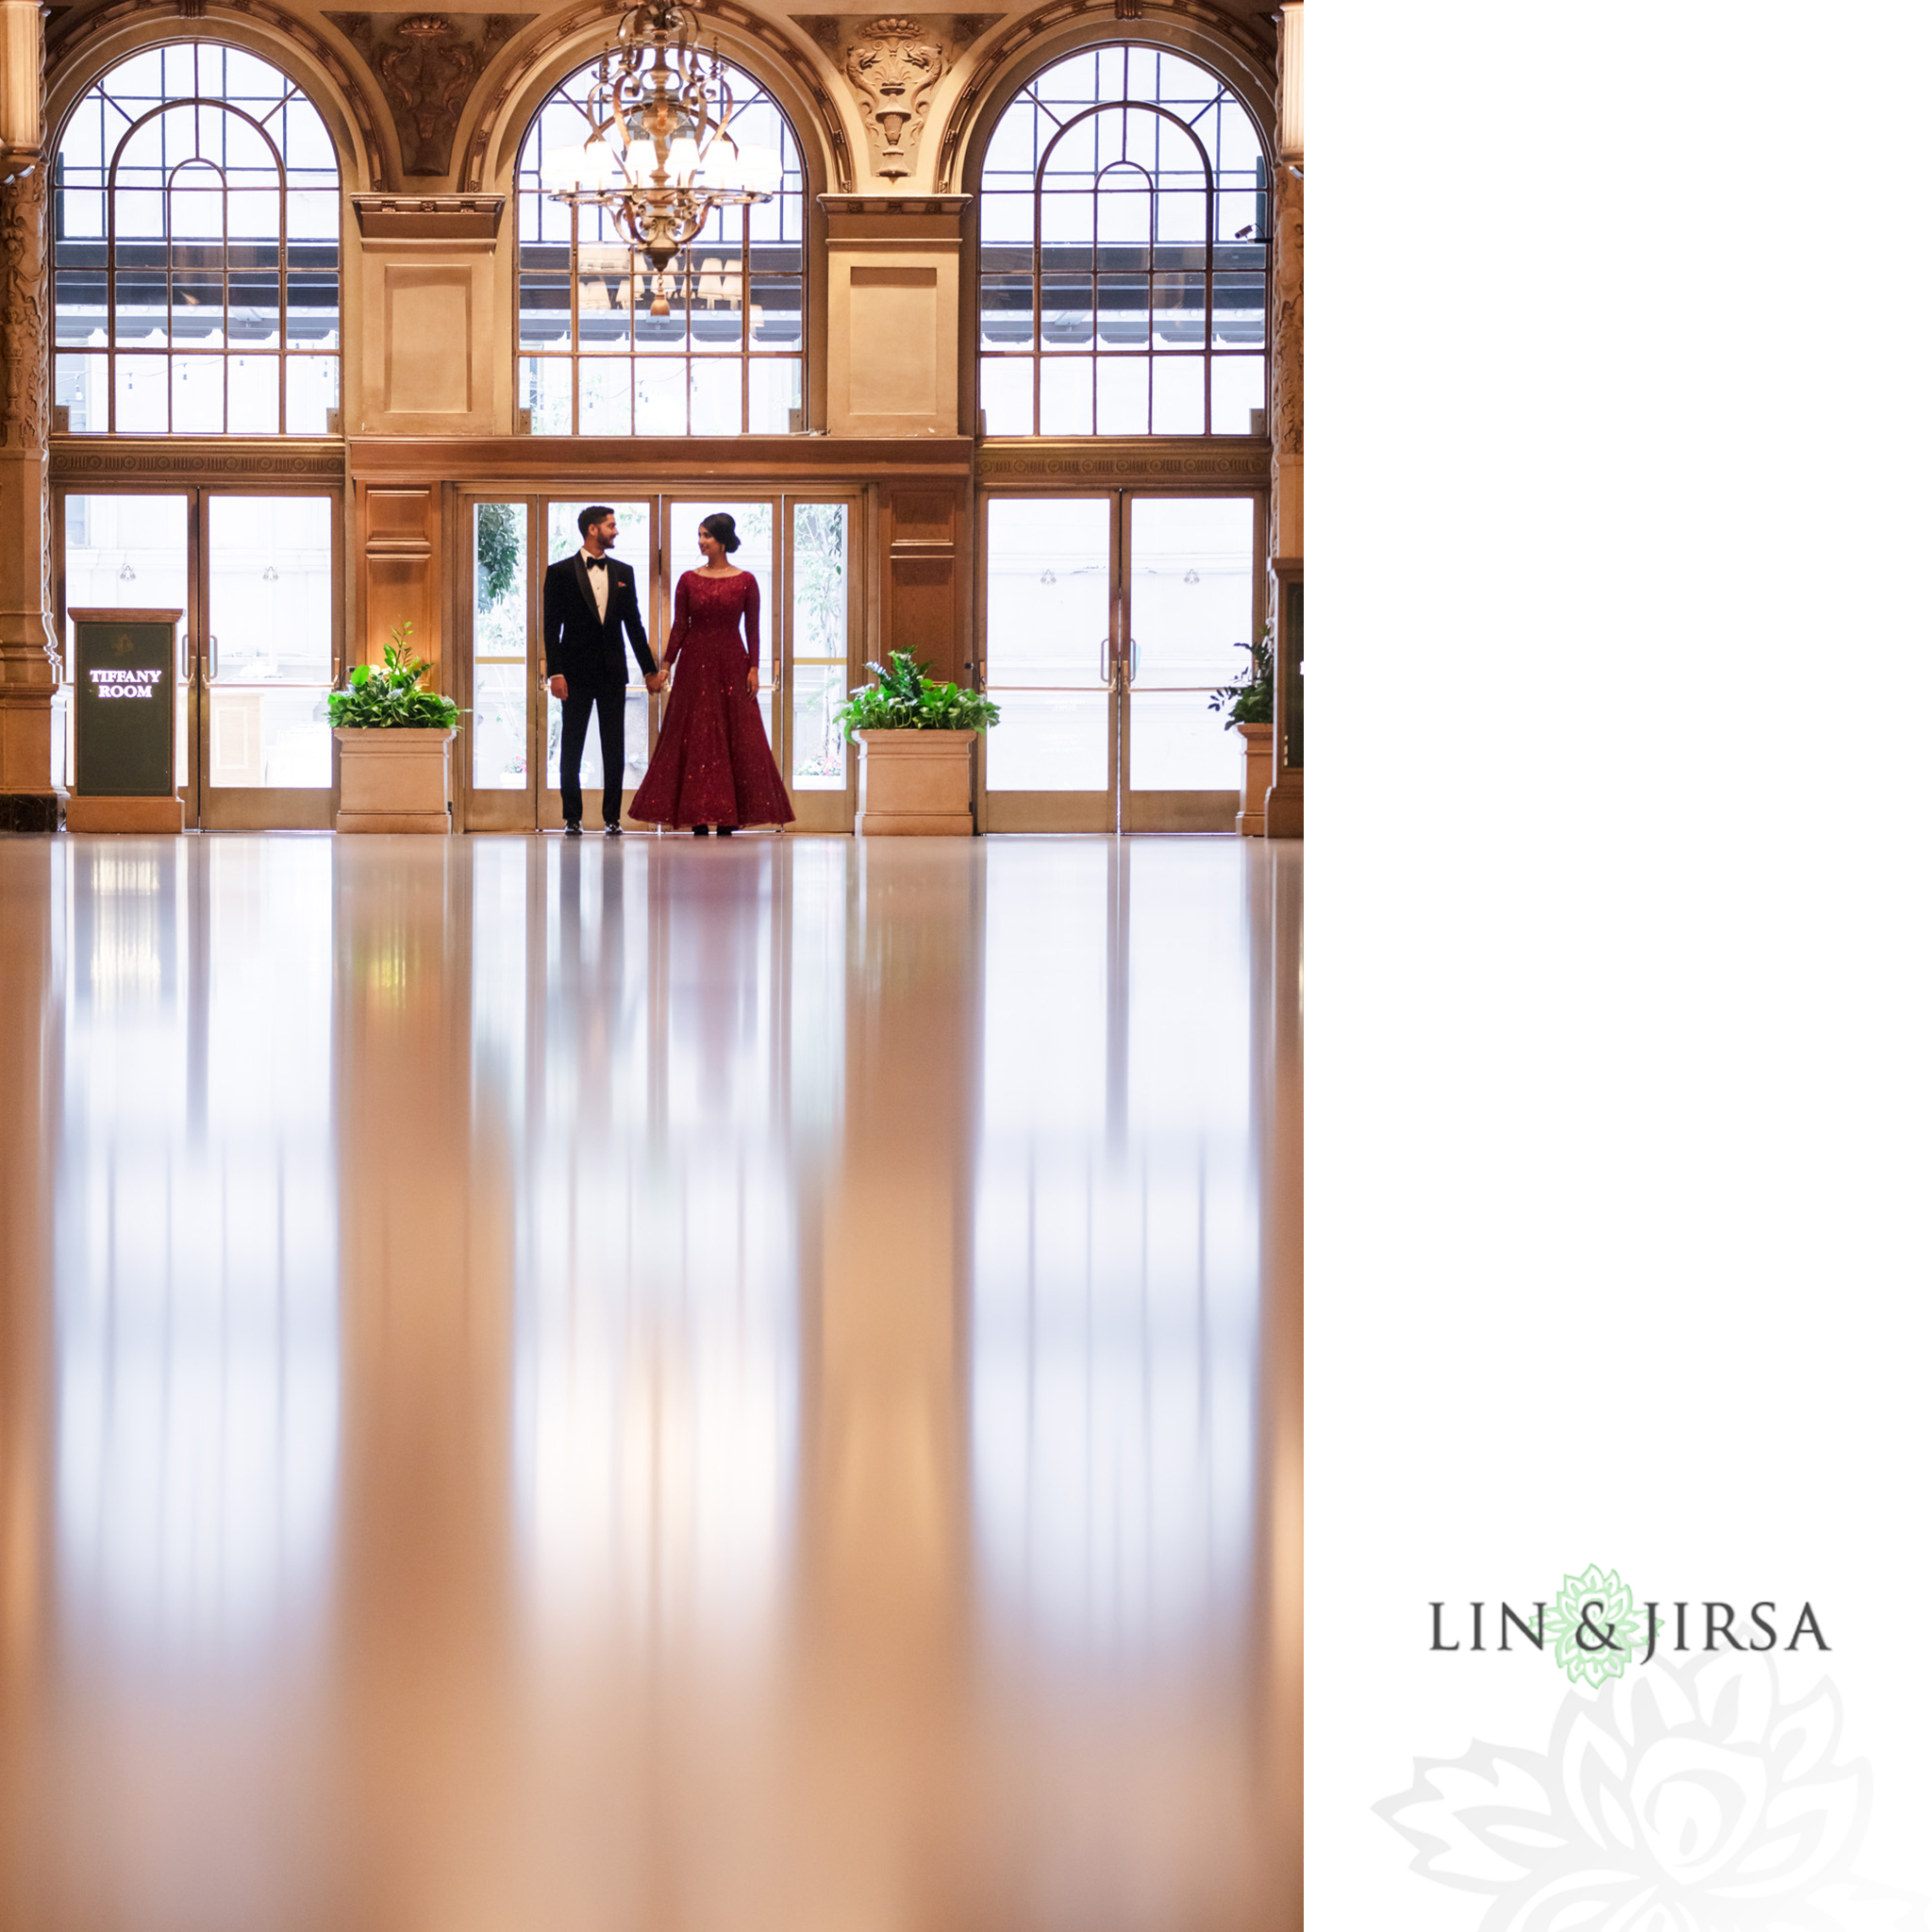 39 Millennium Biltmore Hotel Los Angeles Indian Wedding Reception Photography